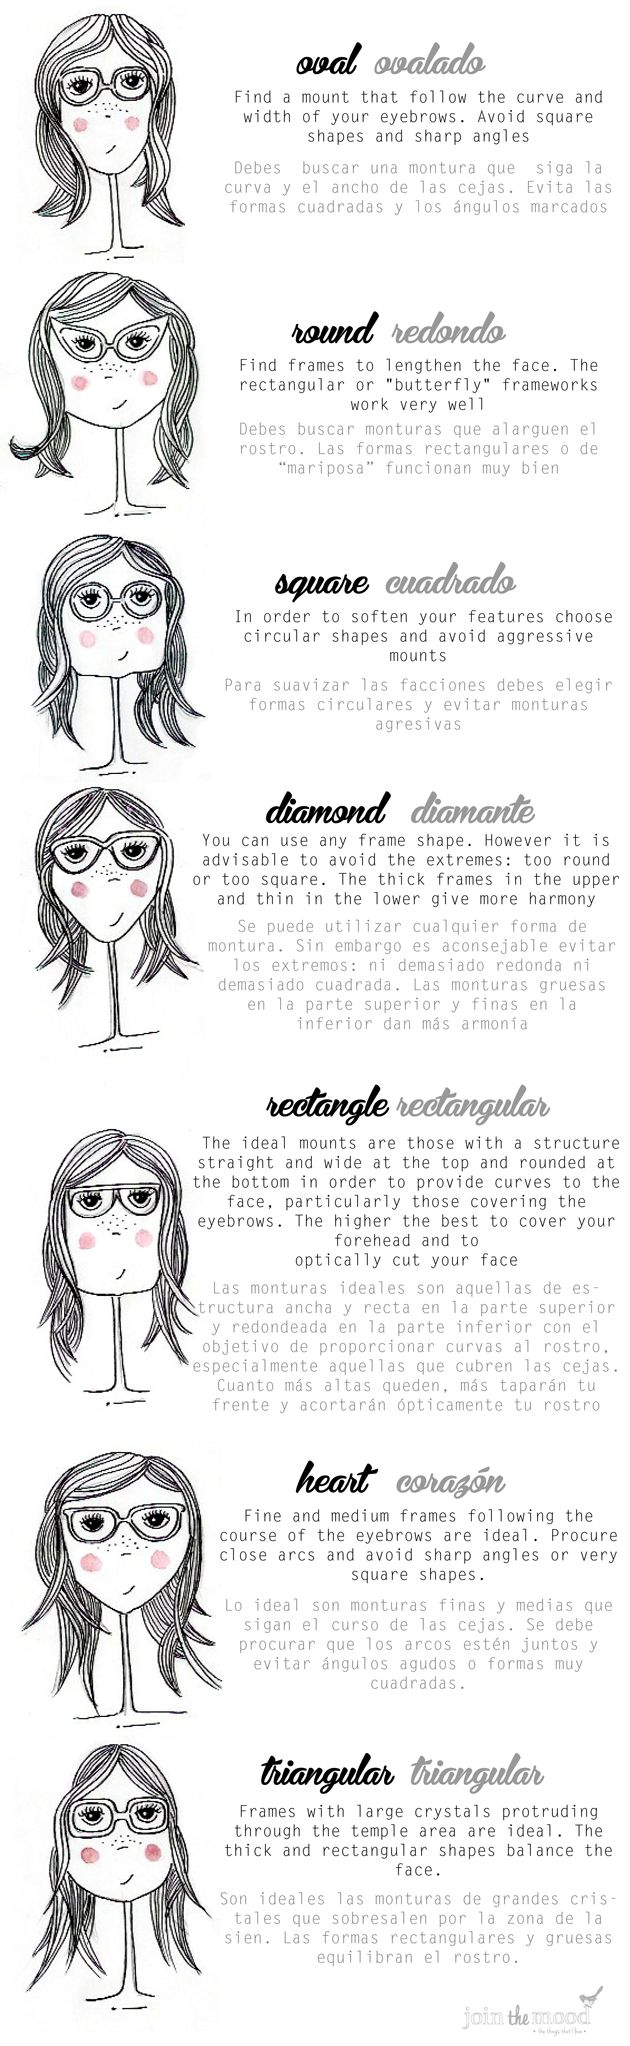 WHAT KIND OF GLASSES YOU MUST USE ACCORDING TO YOUR FACE SHAPE? / QUE TIPO DE GAFAS USAR SEGÚN LA FORMA DE TU ROSTRO?